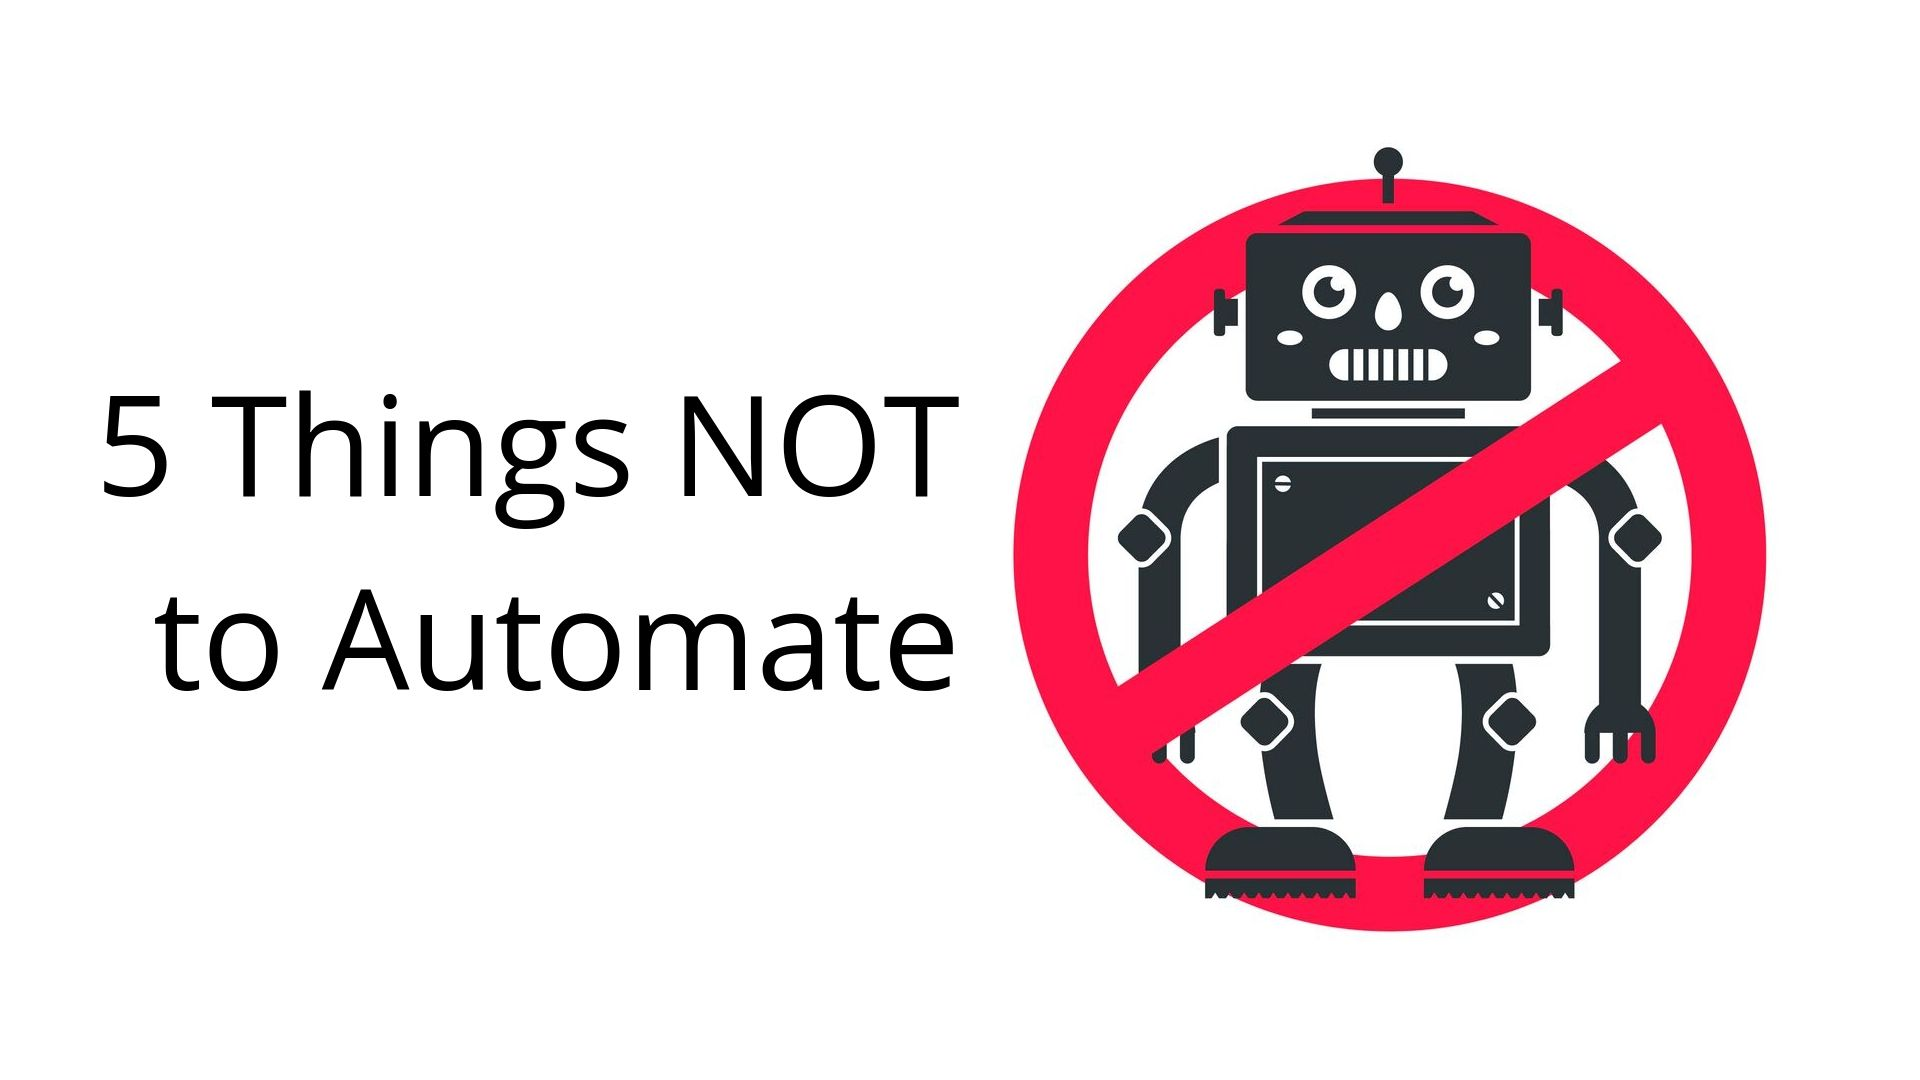 5 Things Not to Automate